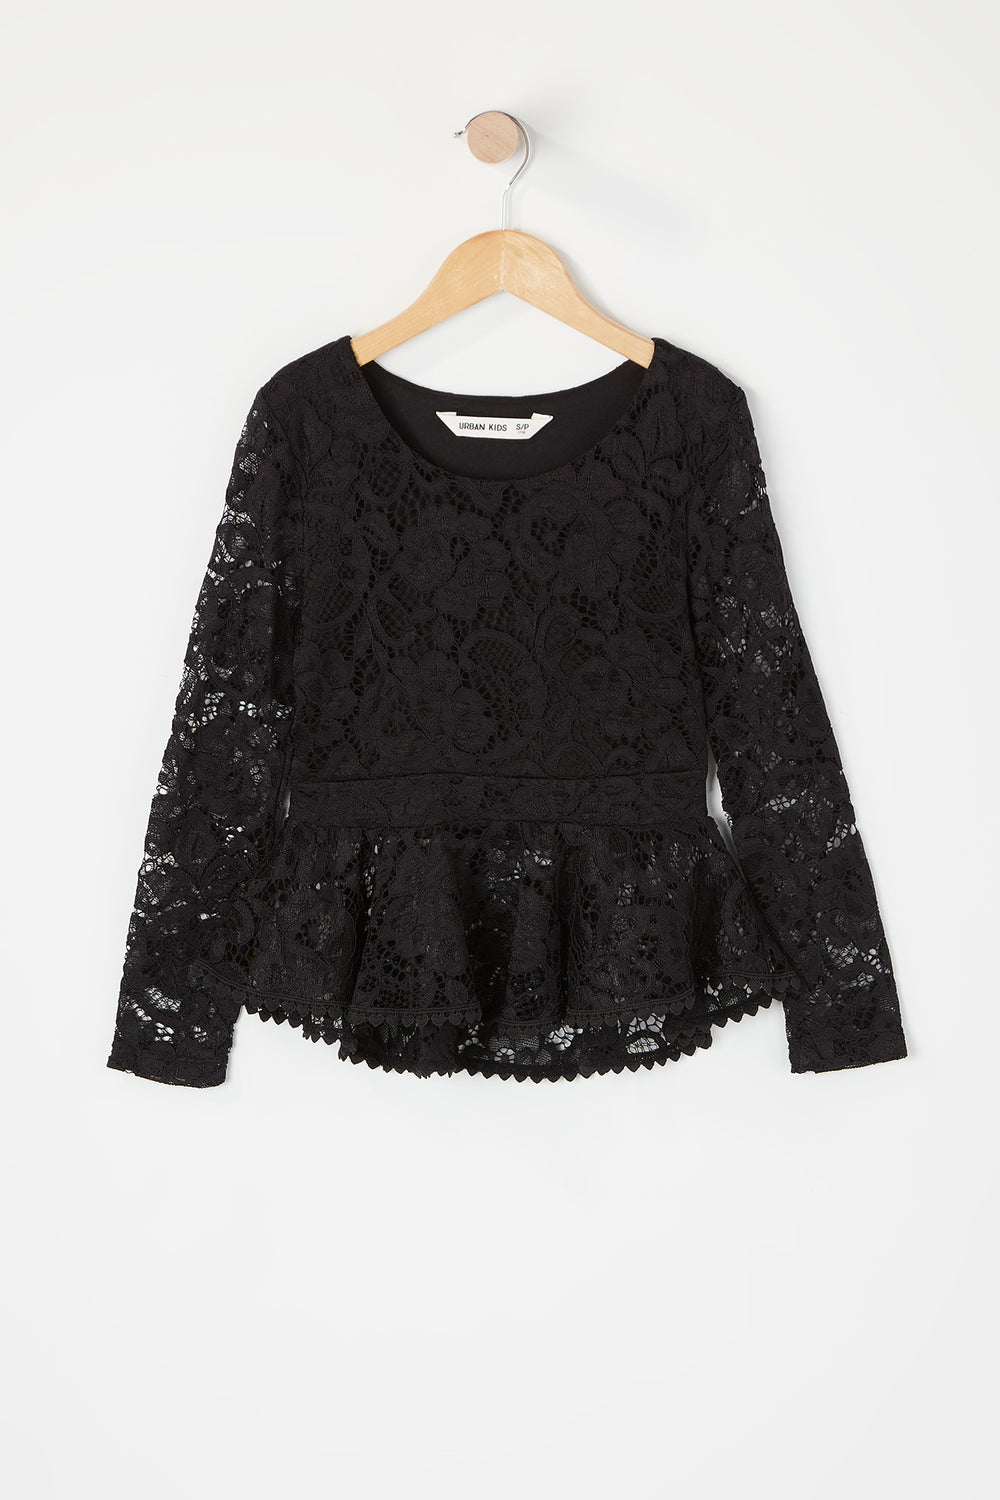 Girls Lace Peplum Long Sleeve Top Black